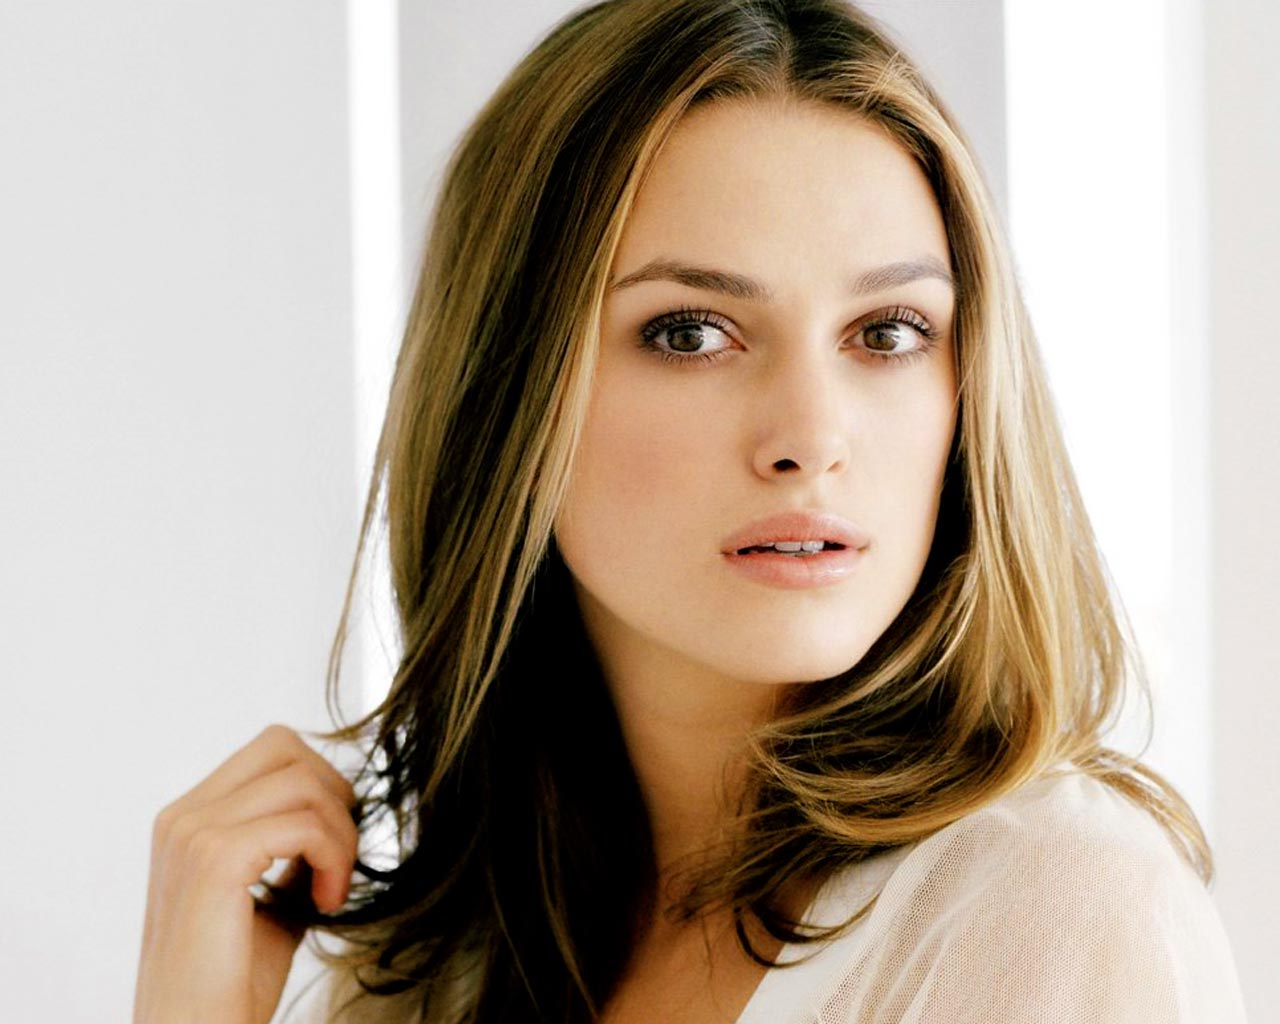 keira knightley's long hairstyles | hairstyles and haircuts